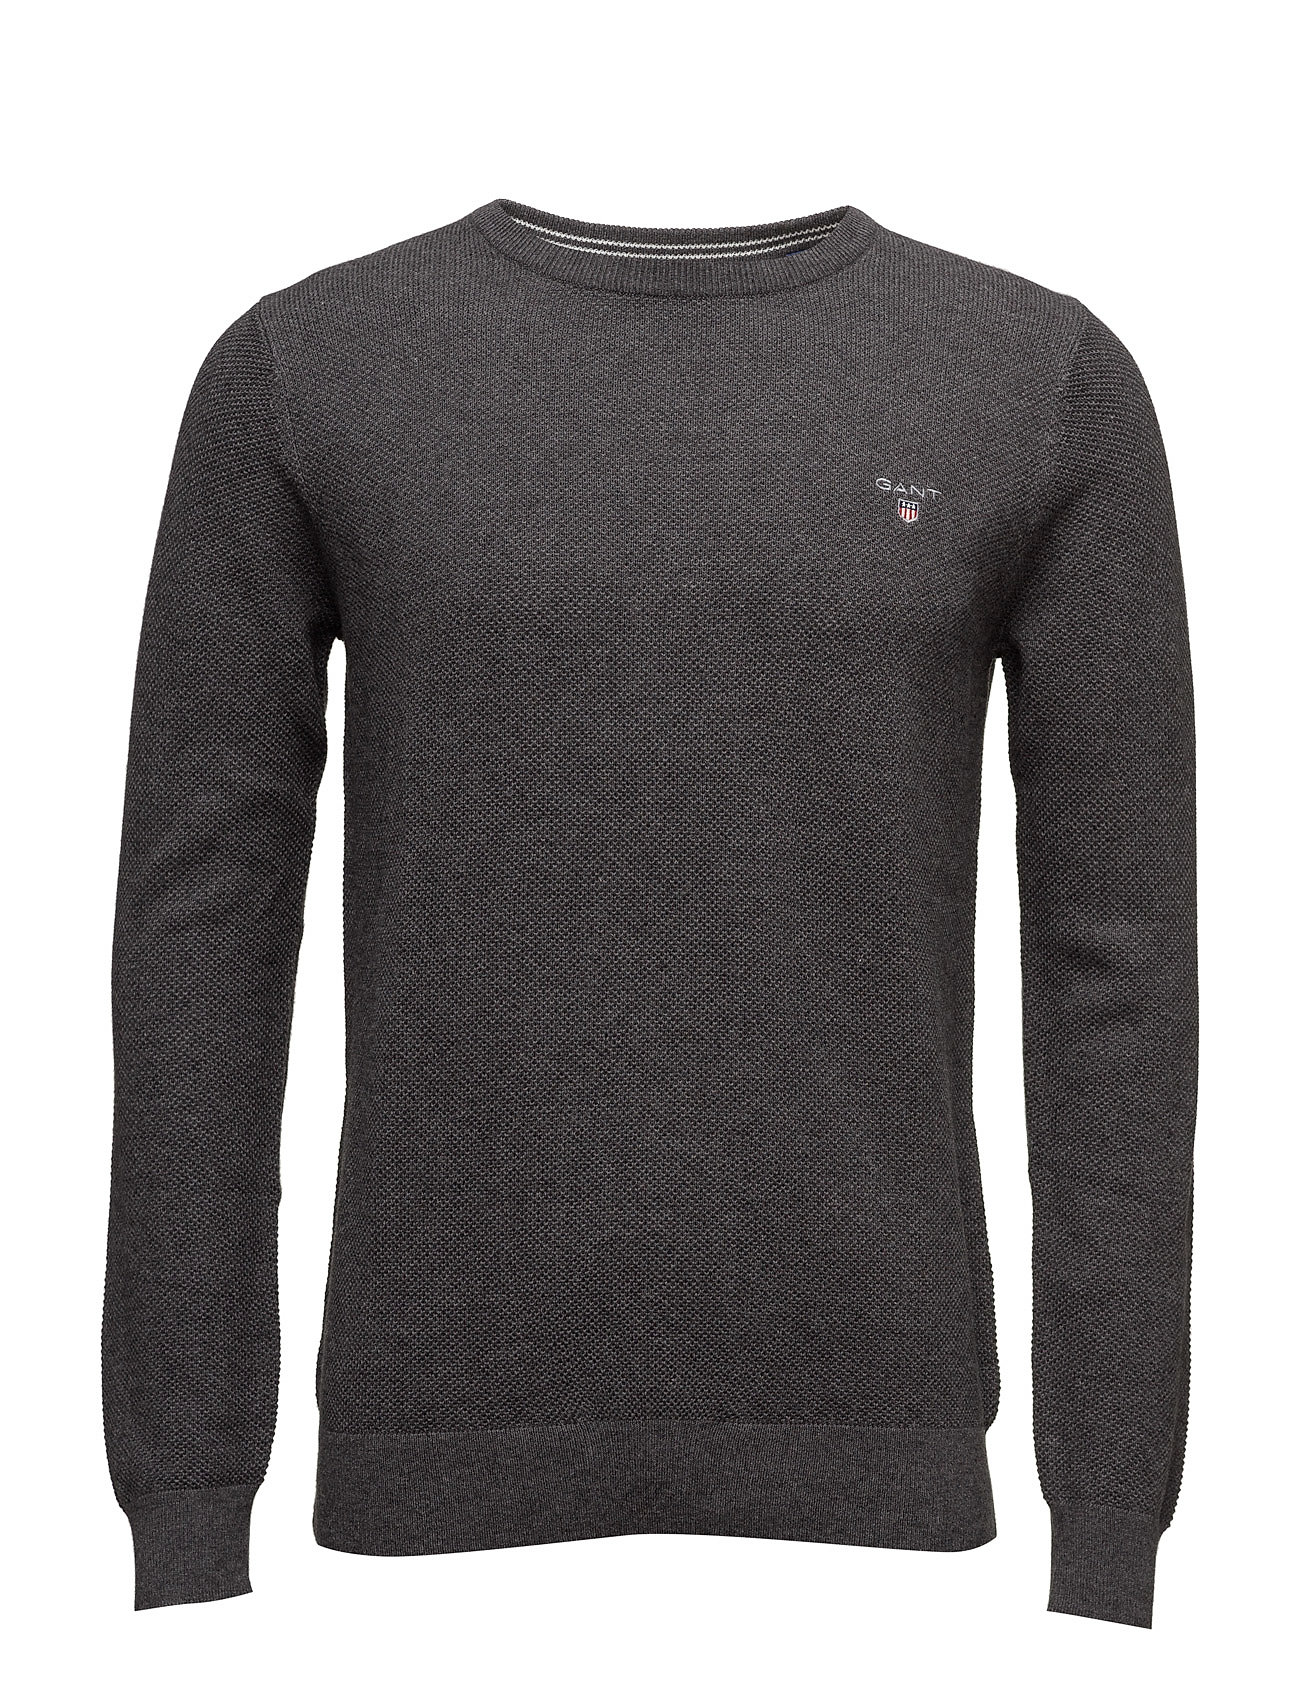 GANT COTTON PIQUE CREW - ANTRACIT MELANGE